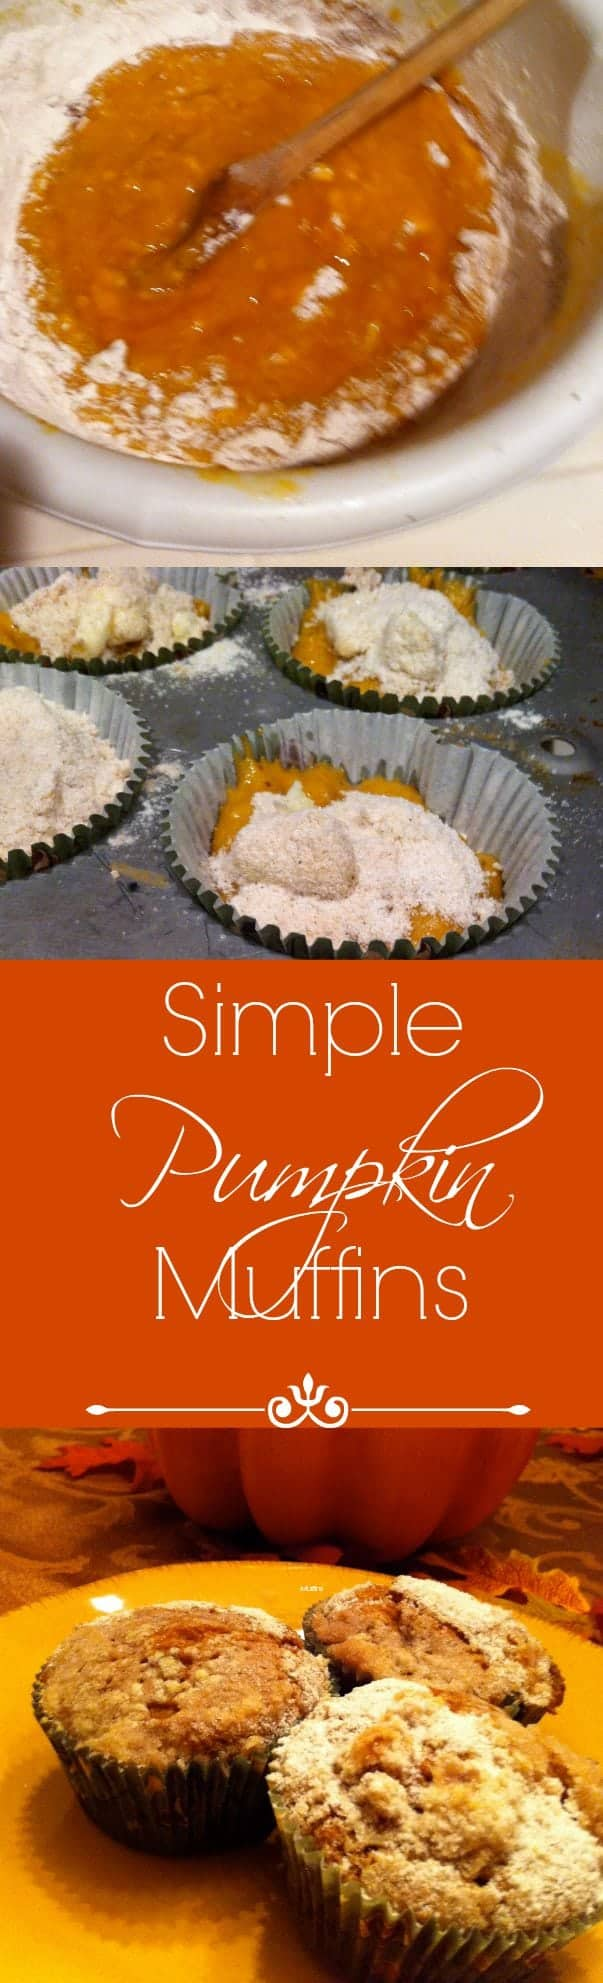 A Simple pumpkin muffin recipe that comes together in about 30 minutes for a breakfast bread or snack.